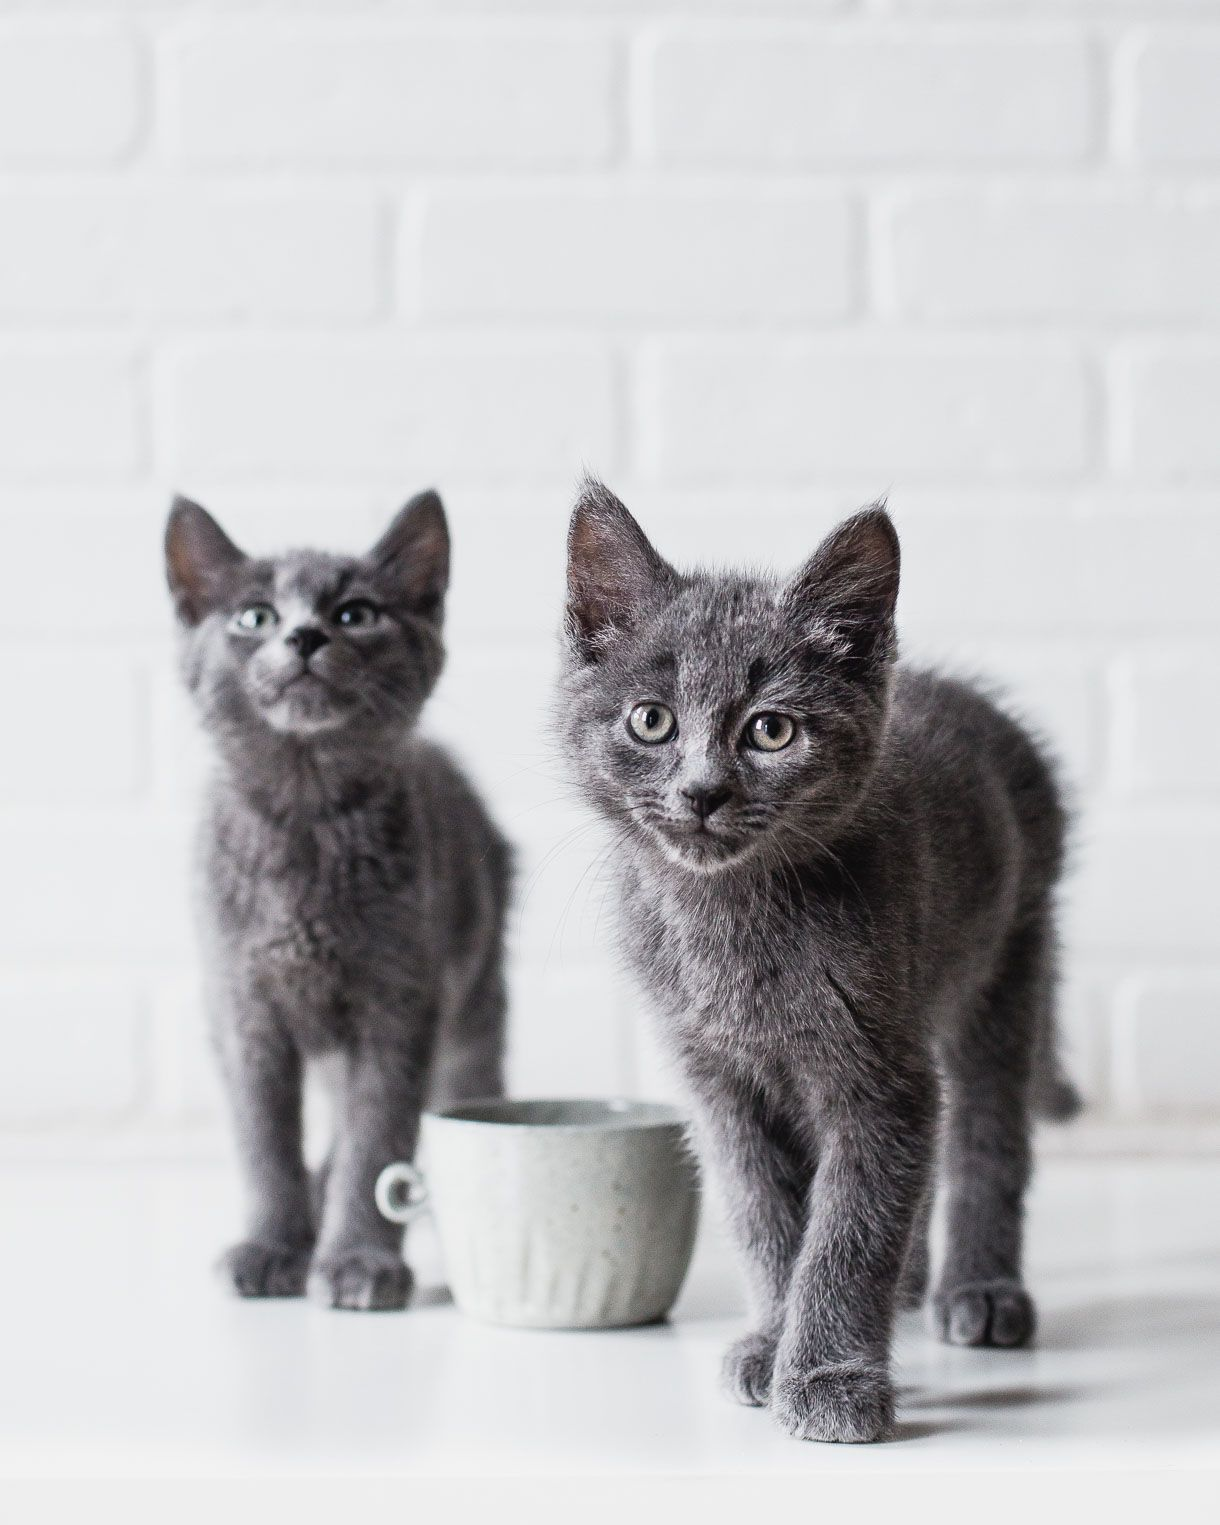 4 Good Reasons To Switch To Grain Free Cat Food Free Cat Food Grain Free Cat Food Cat Food